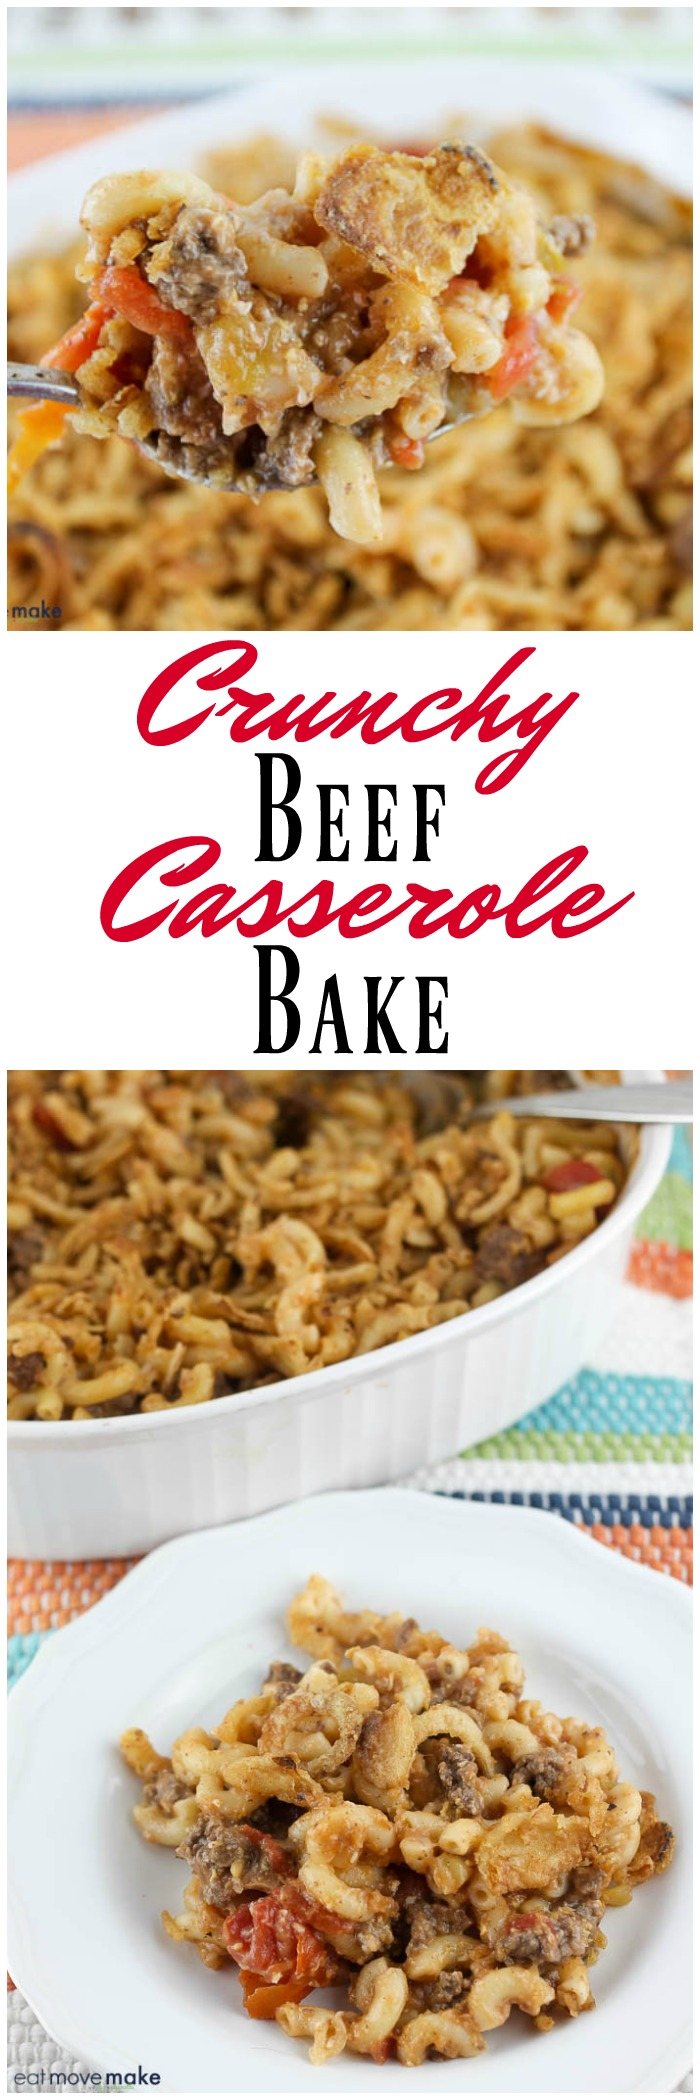 spoonful ground beef casserole with french fried onions